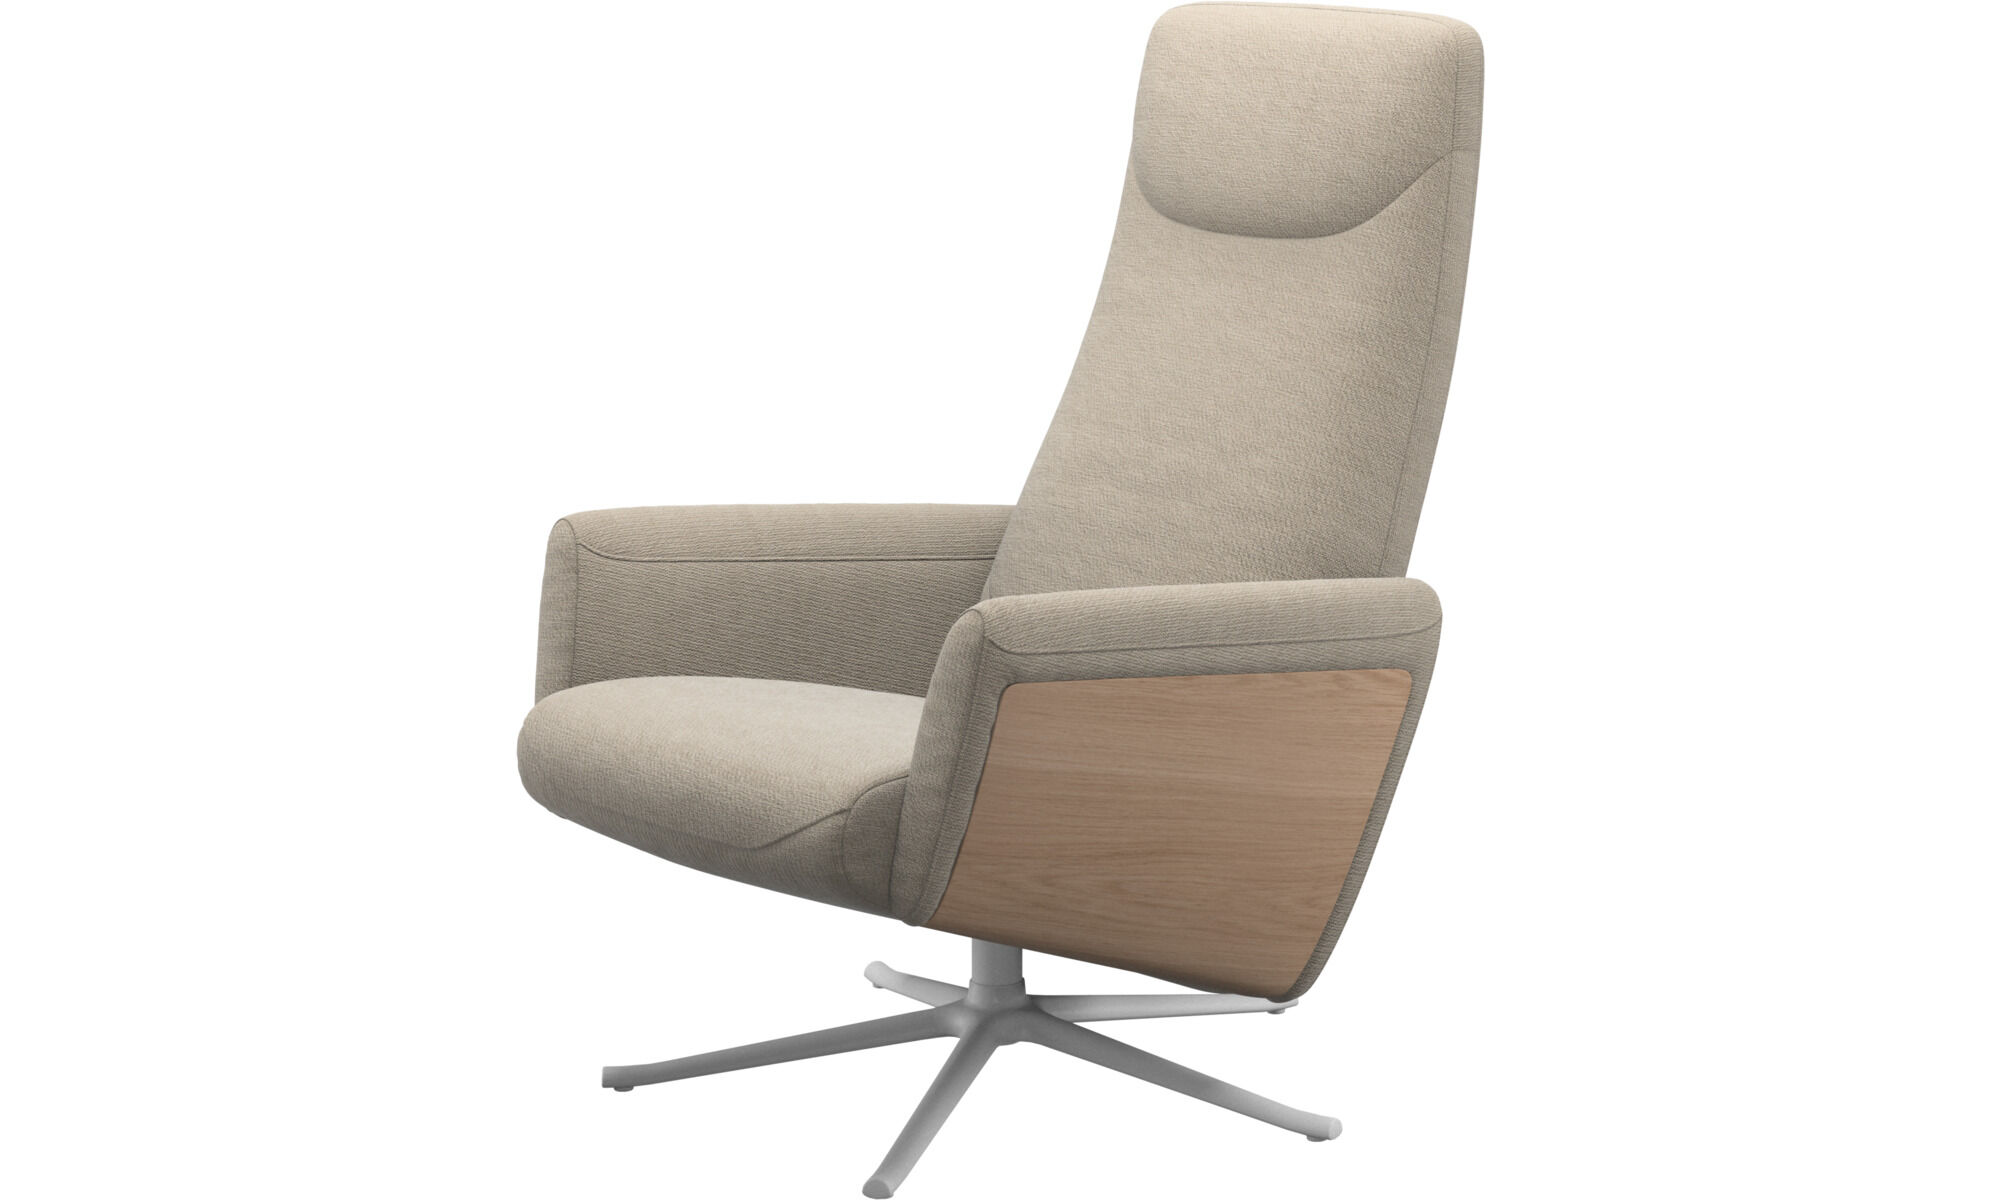 Sessel   Lucca Relax Sessel Mit Drehfunktion   Beige   Stoff